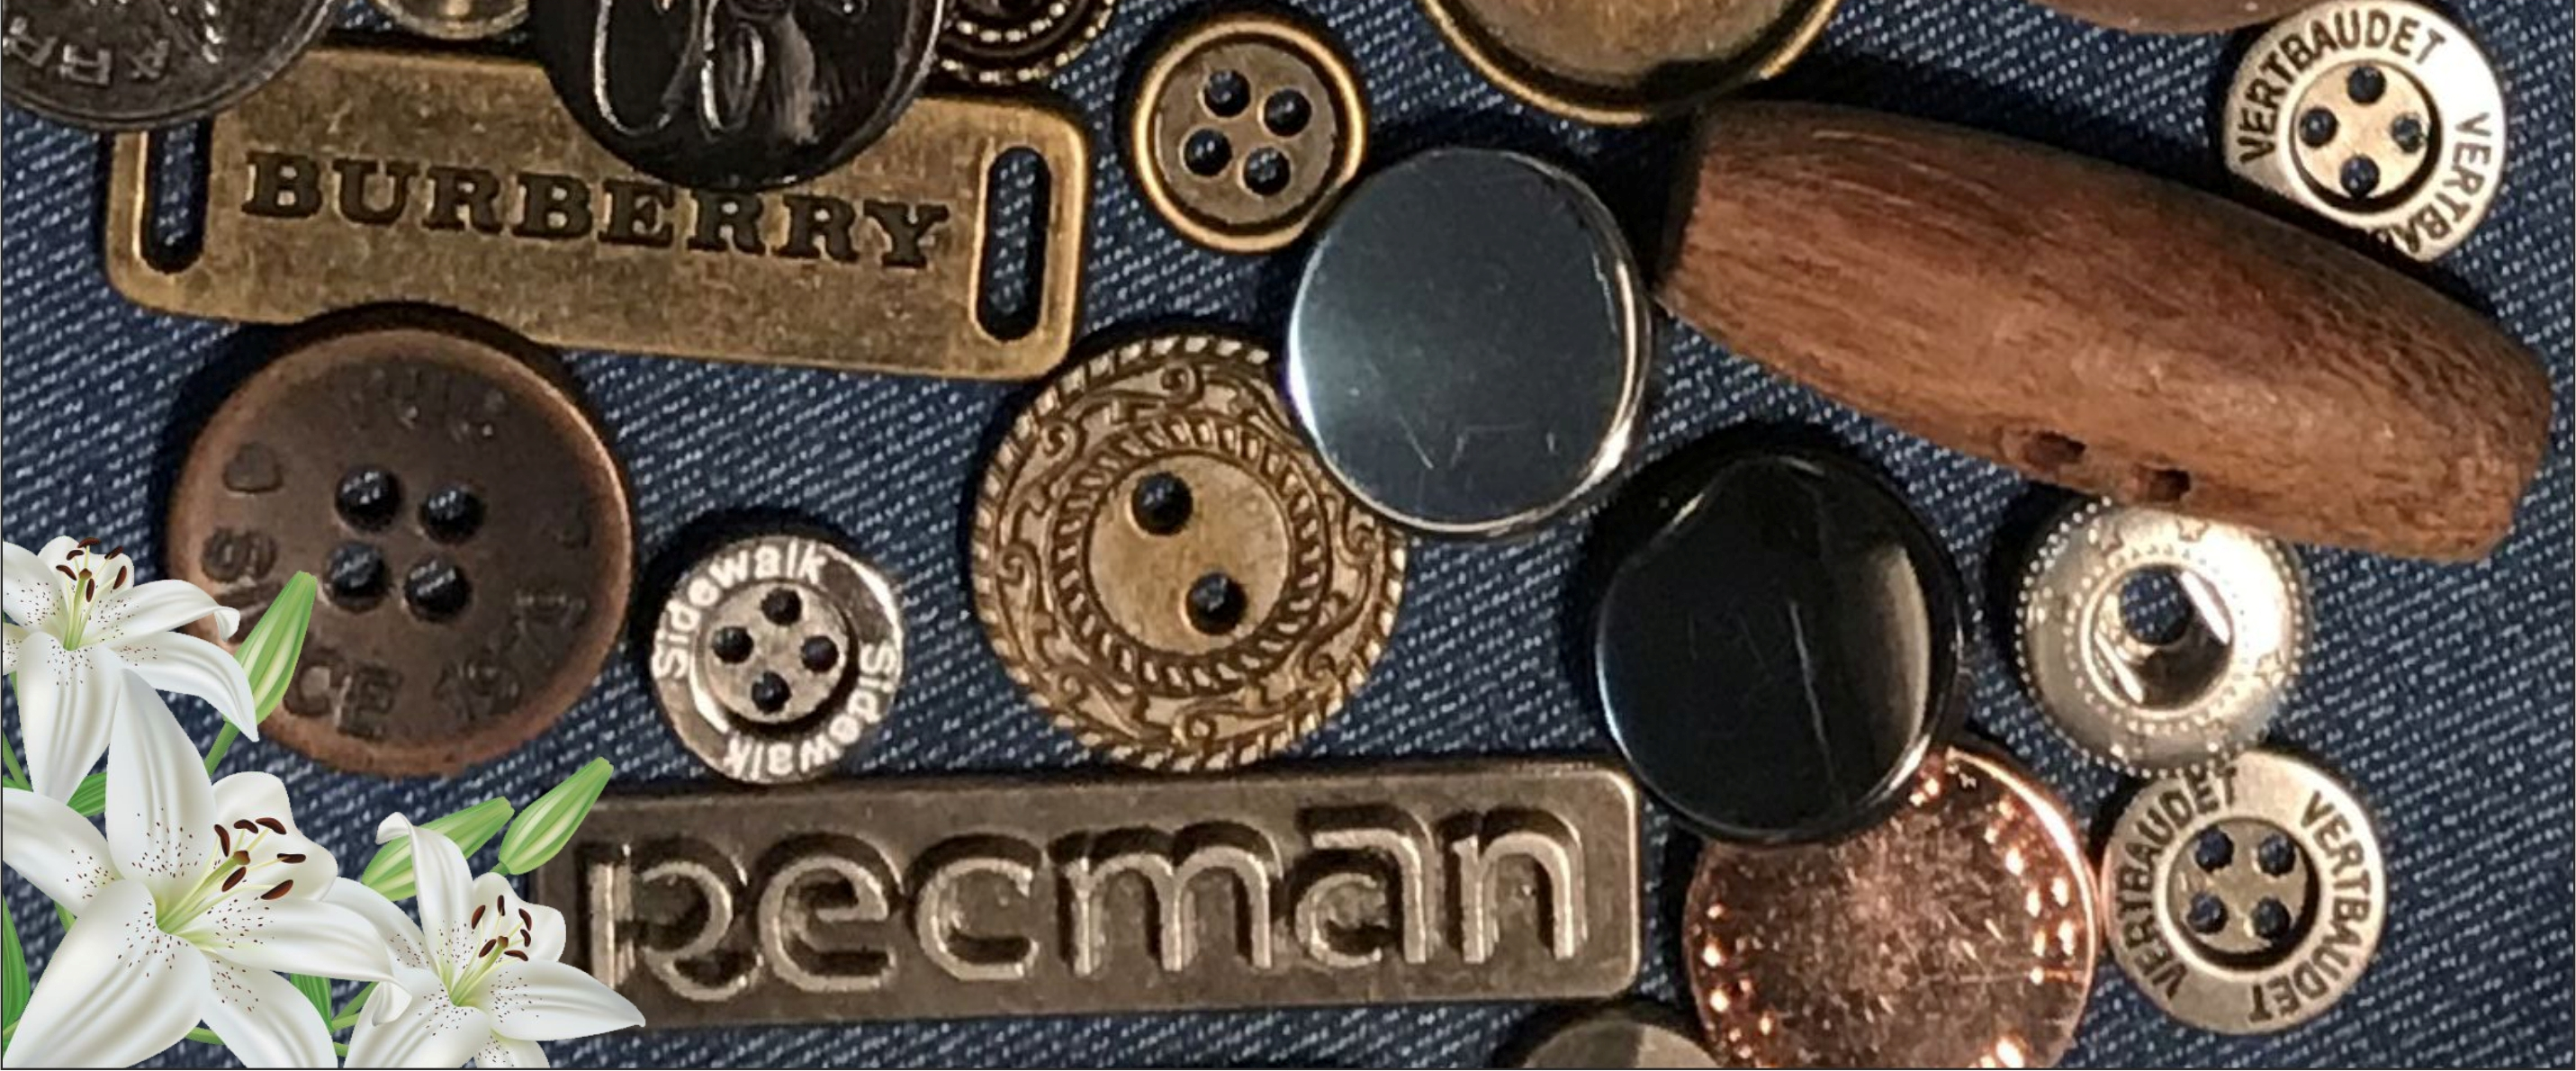 X Trim is for laces, buttons,zippers buckles, metal fastners & fashion accessories from India